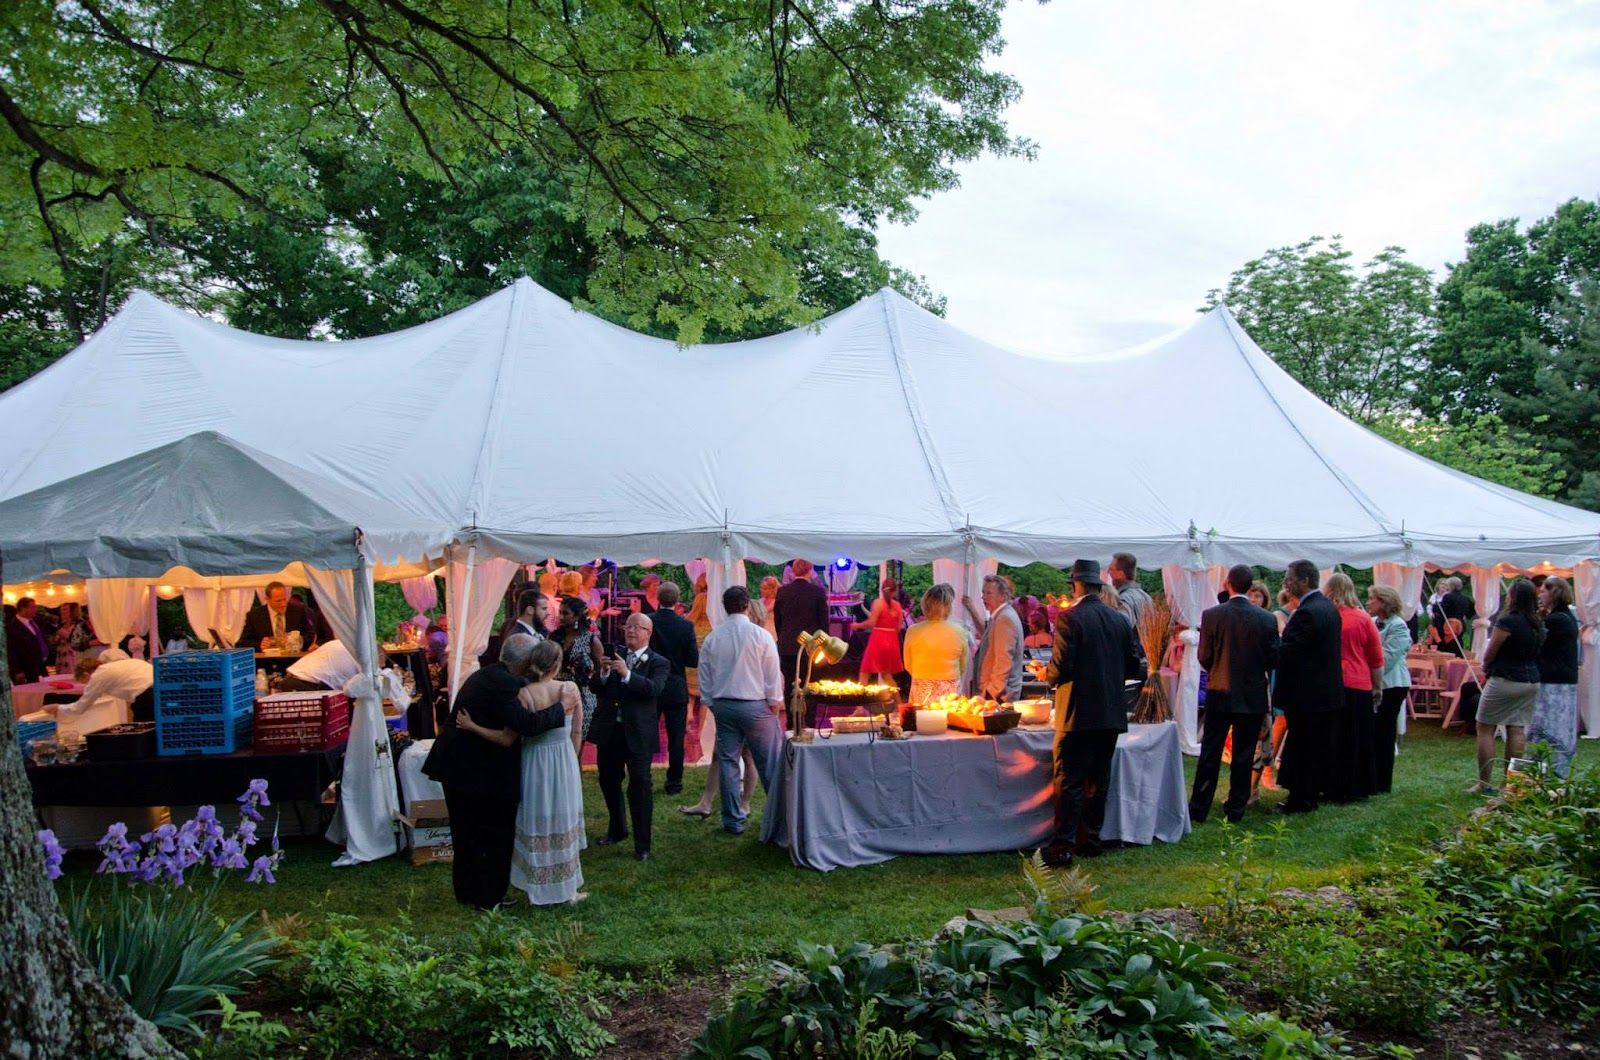 http://www.advantagetentrental.com/wedding-tent-gallery/